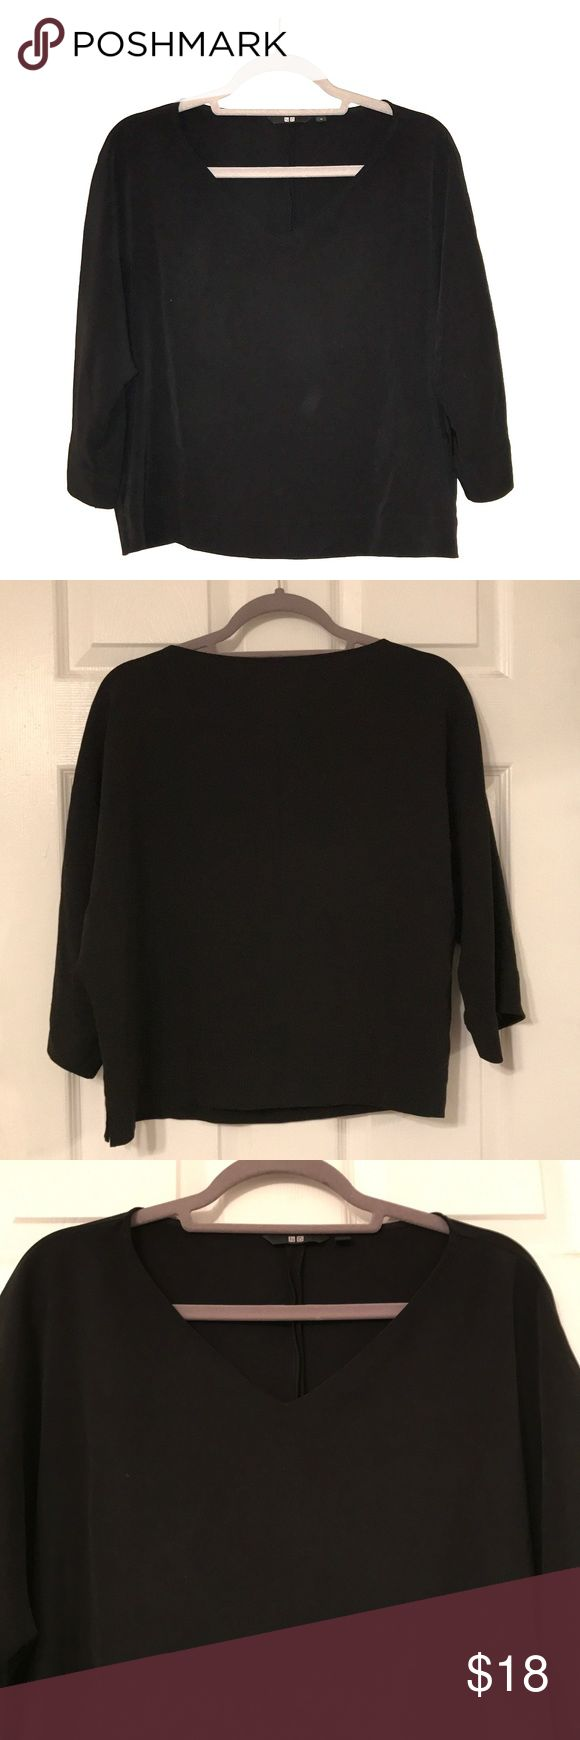 3/4 Trumpet Sleeve Uniqlo Top Chic trumpet sleeved and slightly drape-y V-neck top. Perfect for work or happy hour with a slim cut pant or brightly colored skirt! Uniqlo Tops Blouses